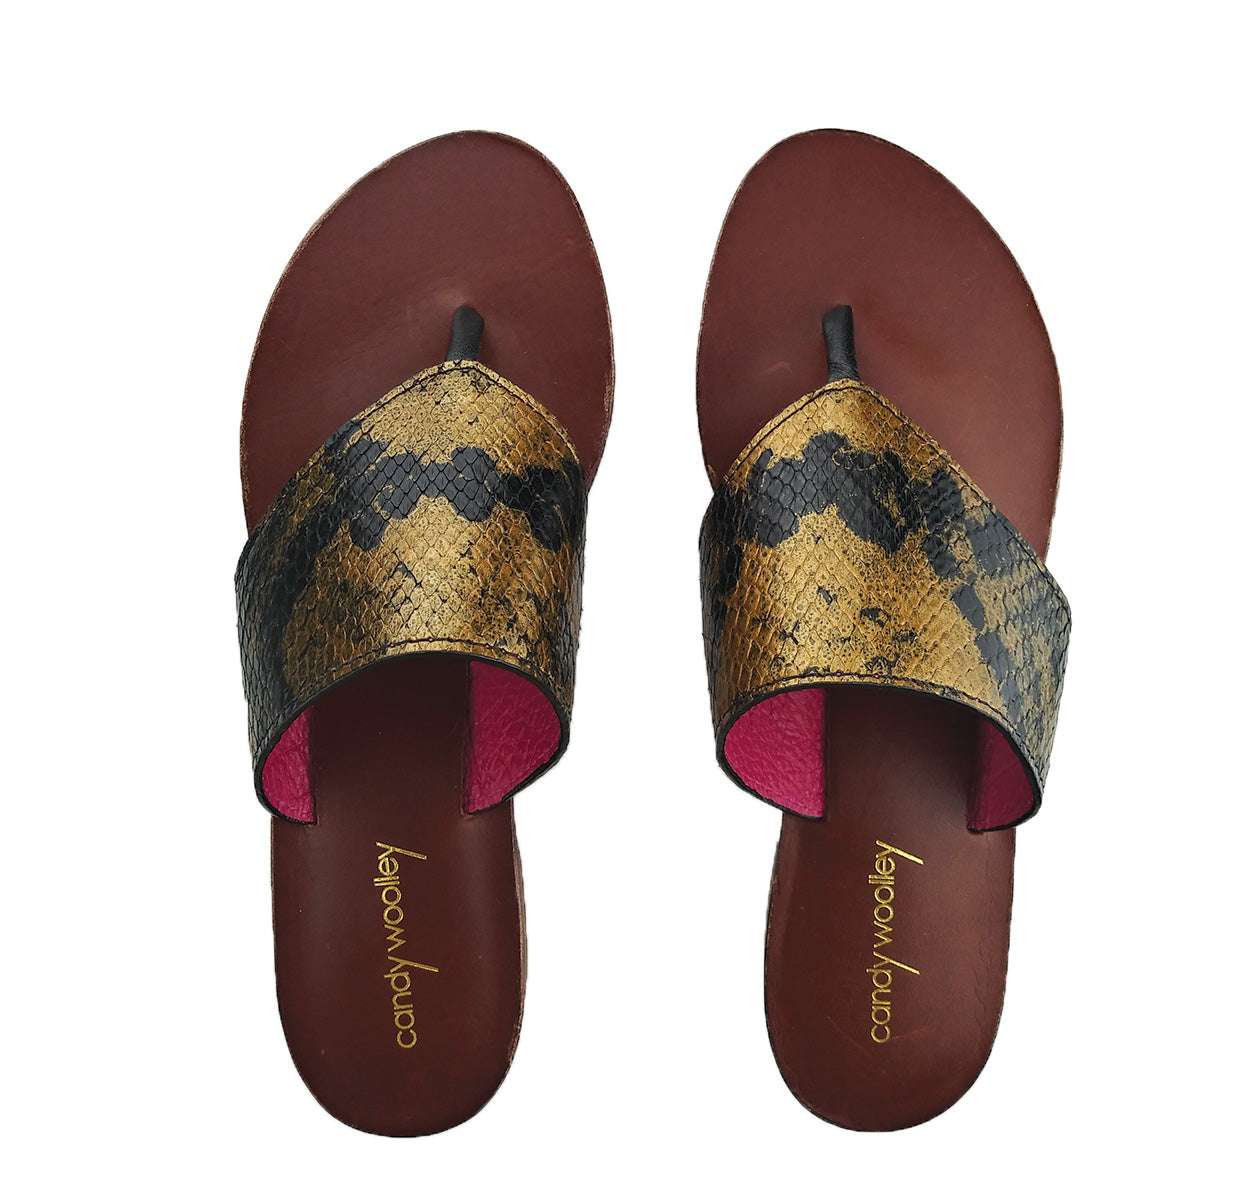 Genuine Python, Gold & Black Flat Thong Sandals. Size Available 9. [NEW: NON-SLIP & SOLE PROTECTOR]